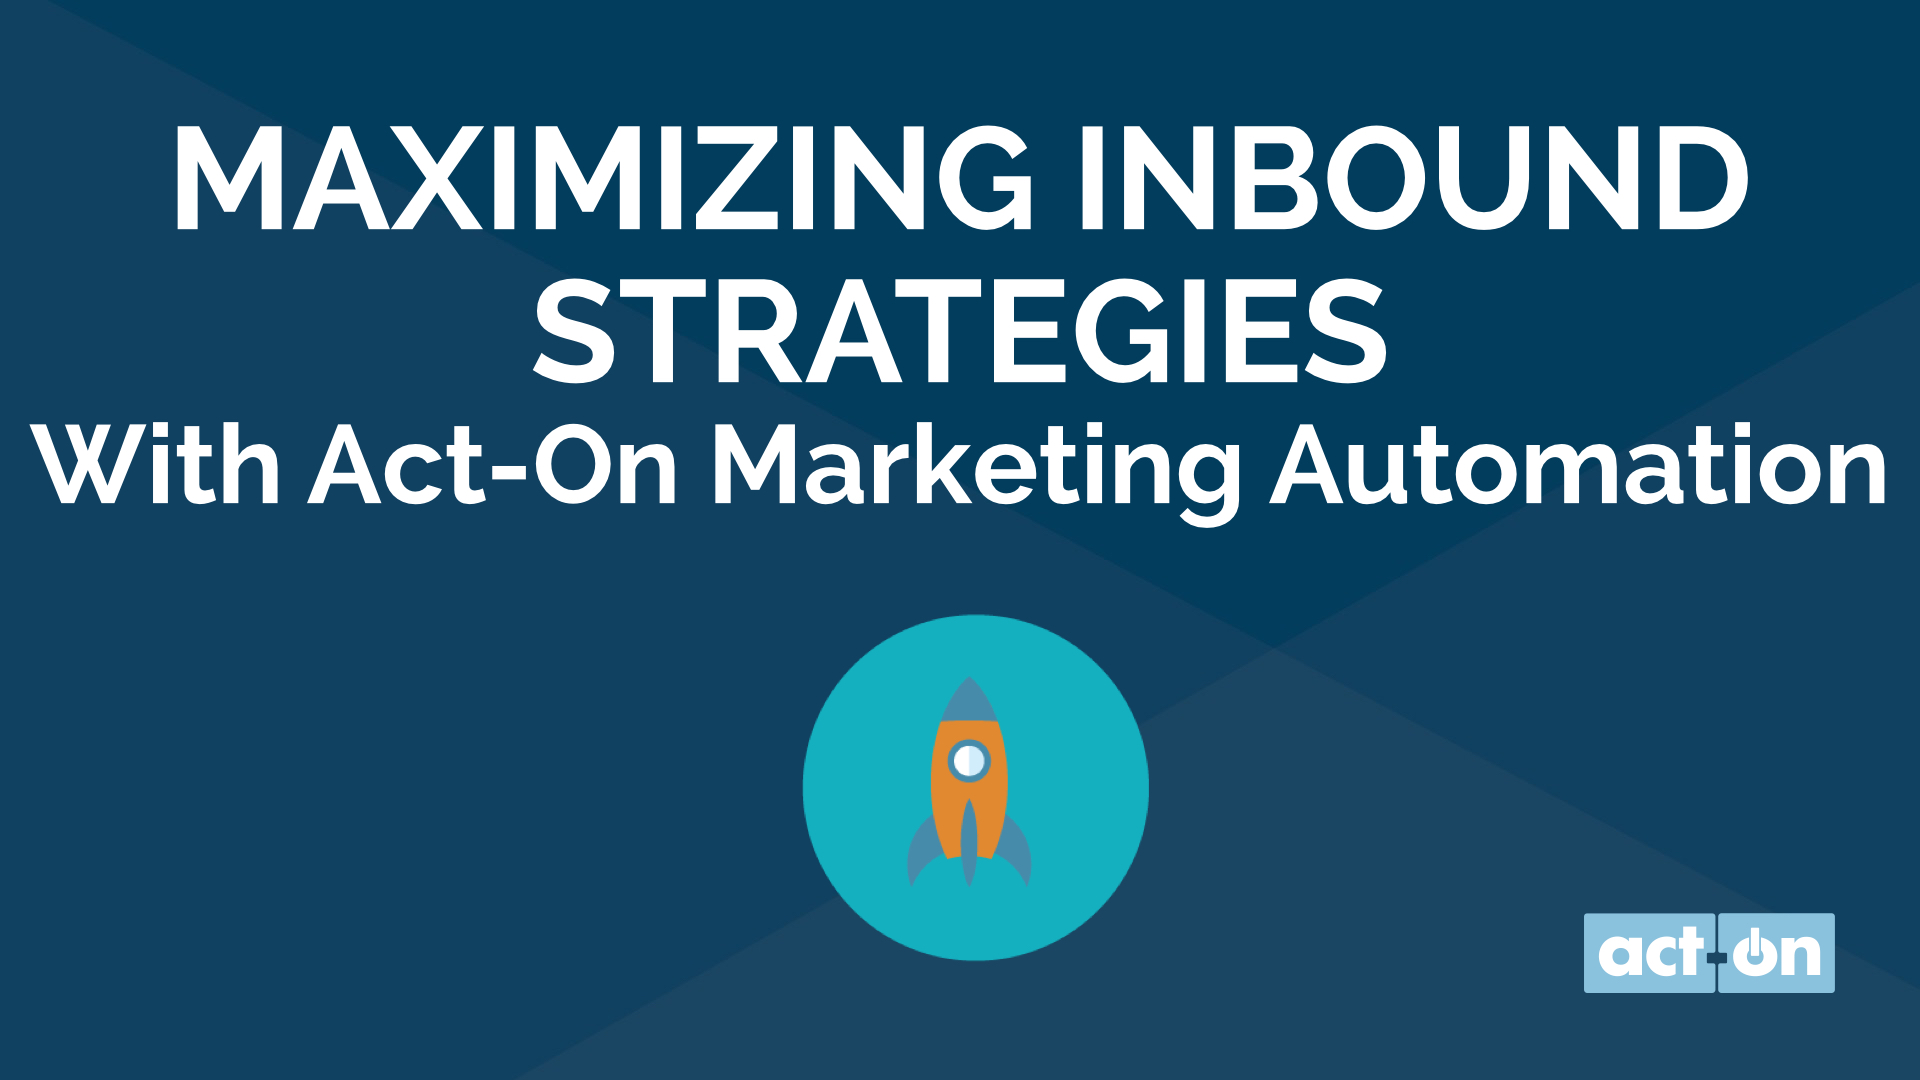 Maximizing Inbound Strategies